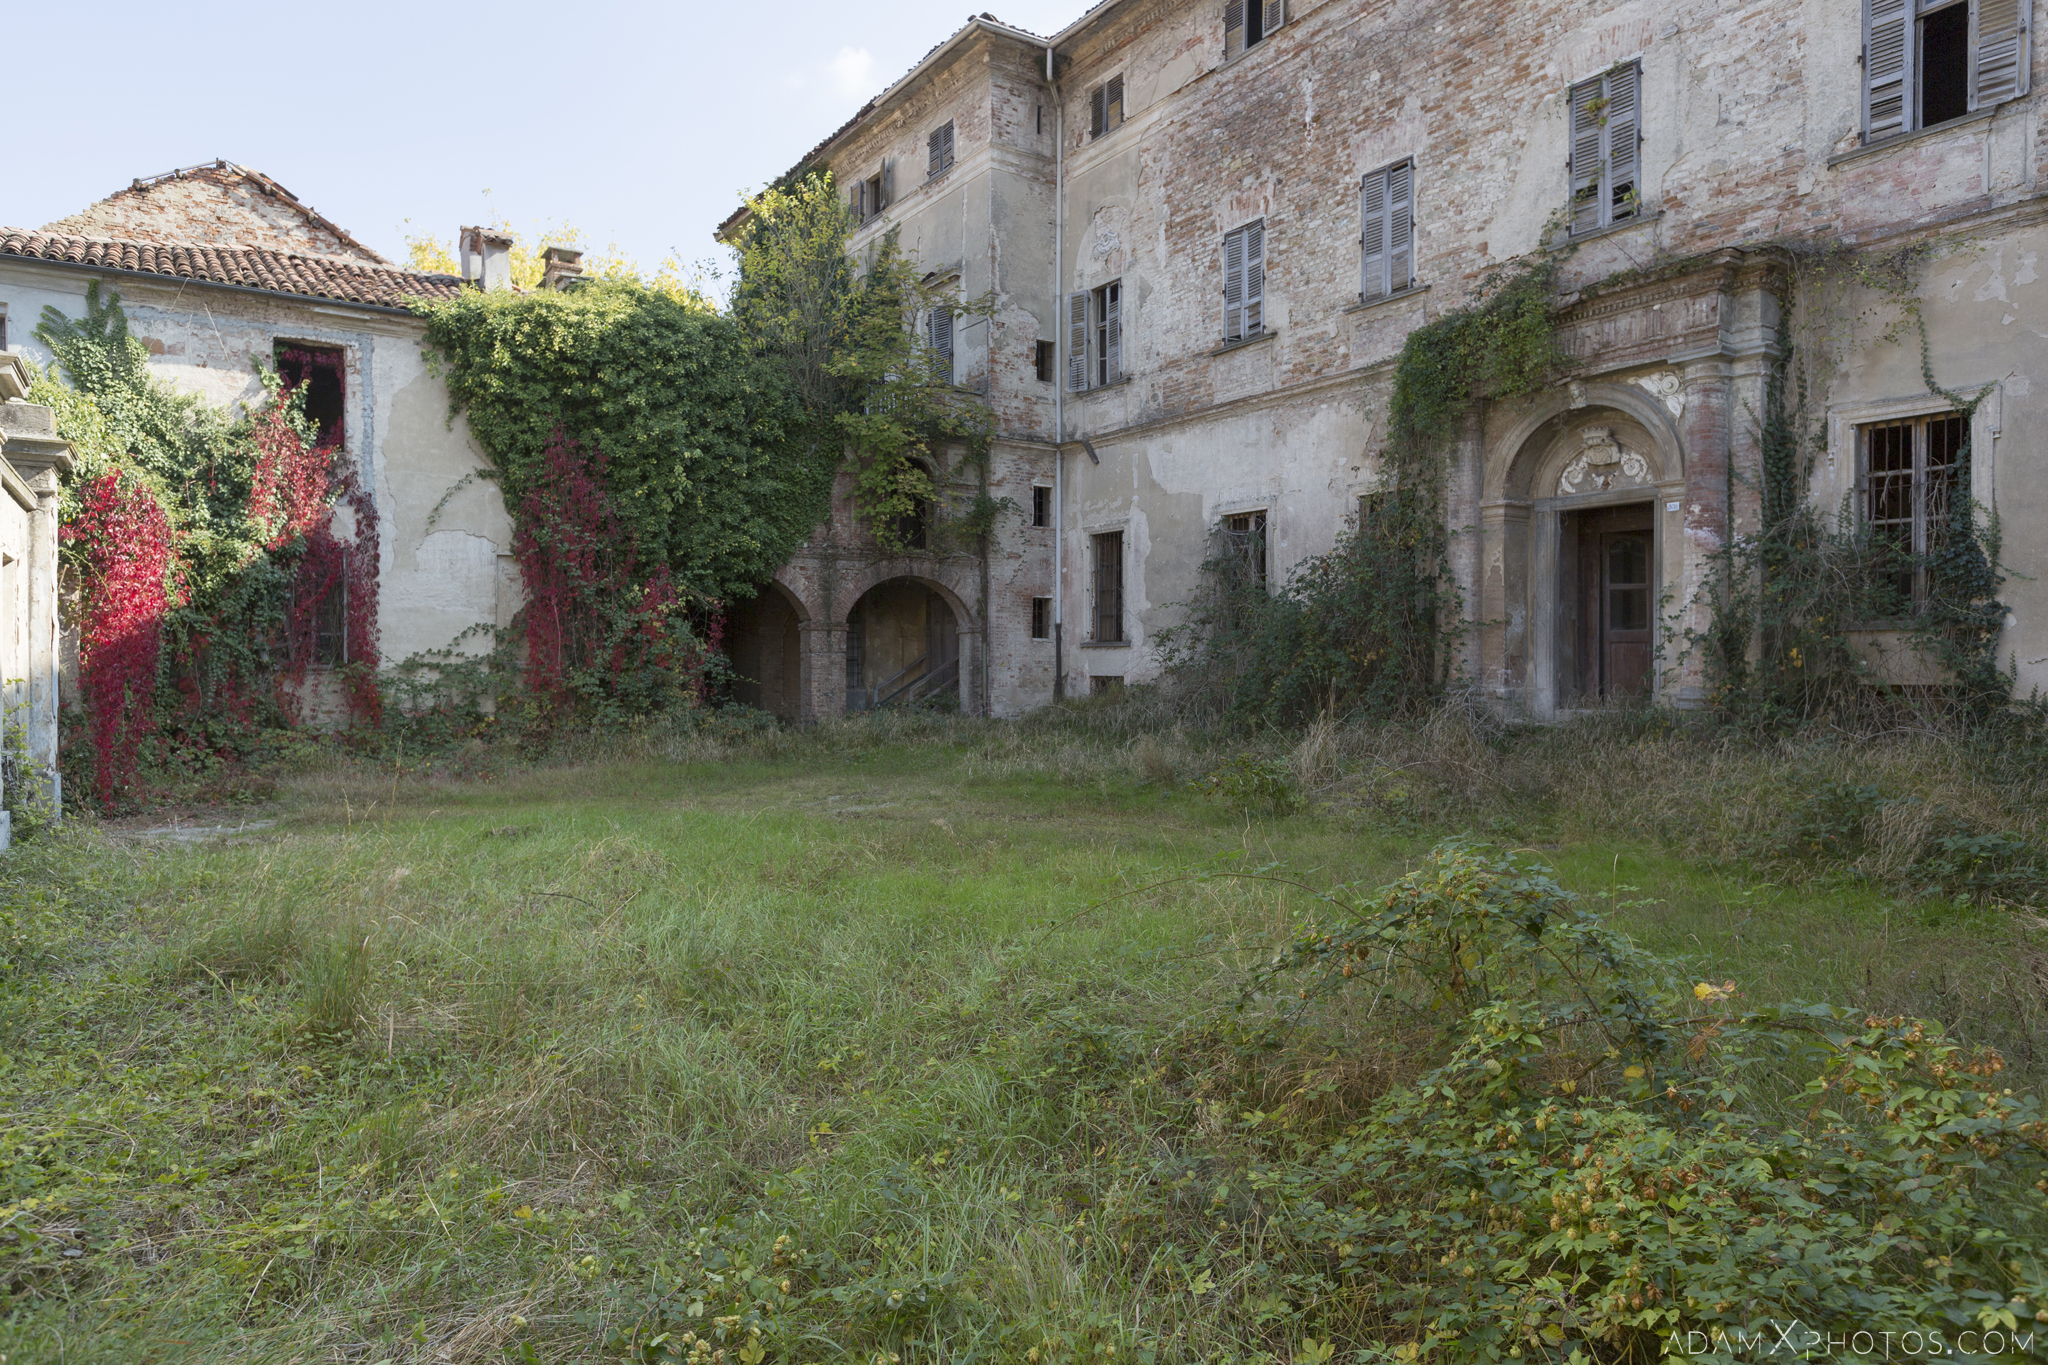 Garden Grounds exterior outside external Palazzo di L dei Conte M Castello di Lauriano Urbex Adam X Urban Exploration Italy Italia Access 2016 Abandoned Grand Ornate Neoclassical decay lost forgotten infiltration derelict location creepy haunting eerie